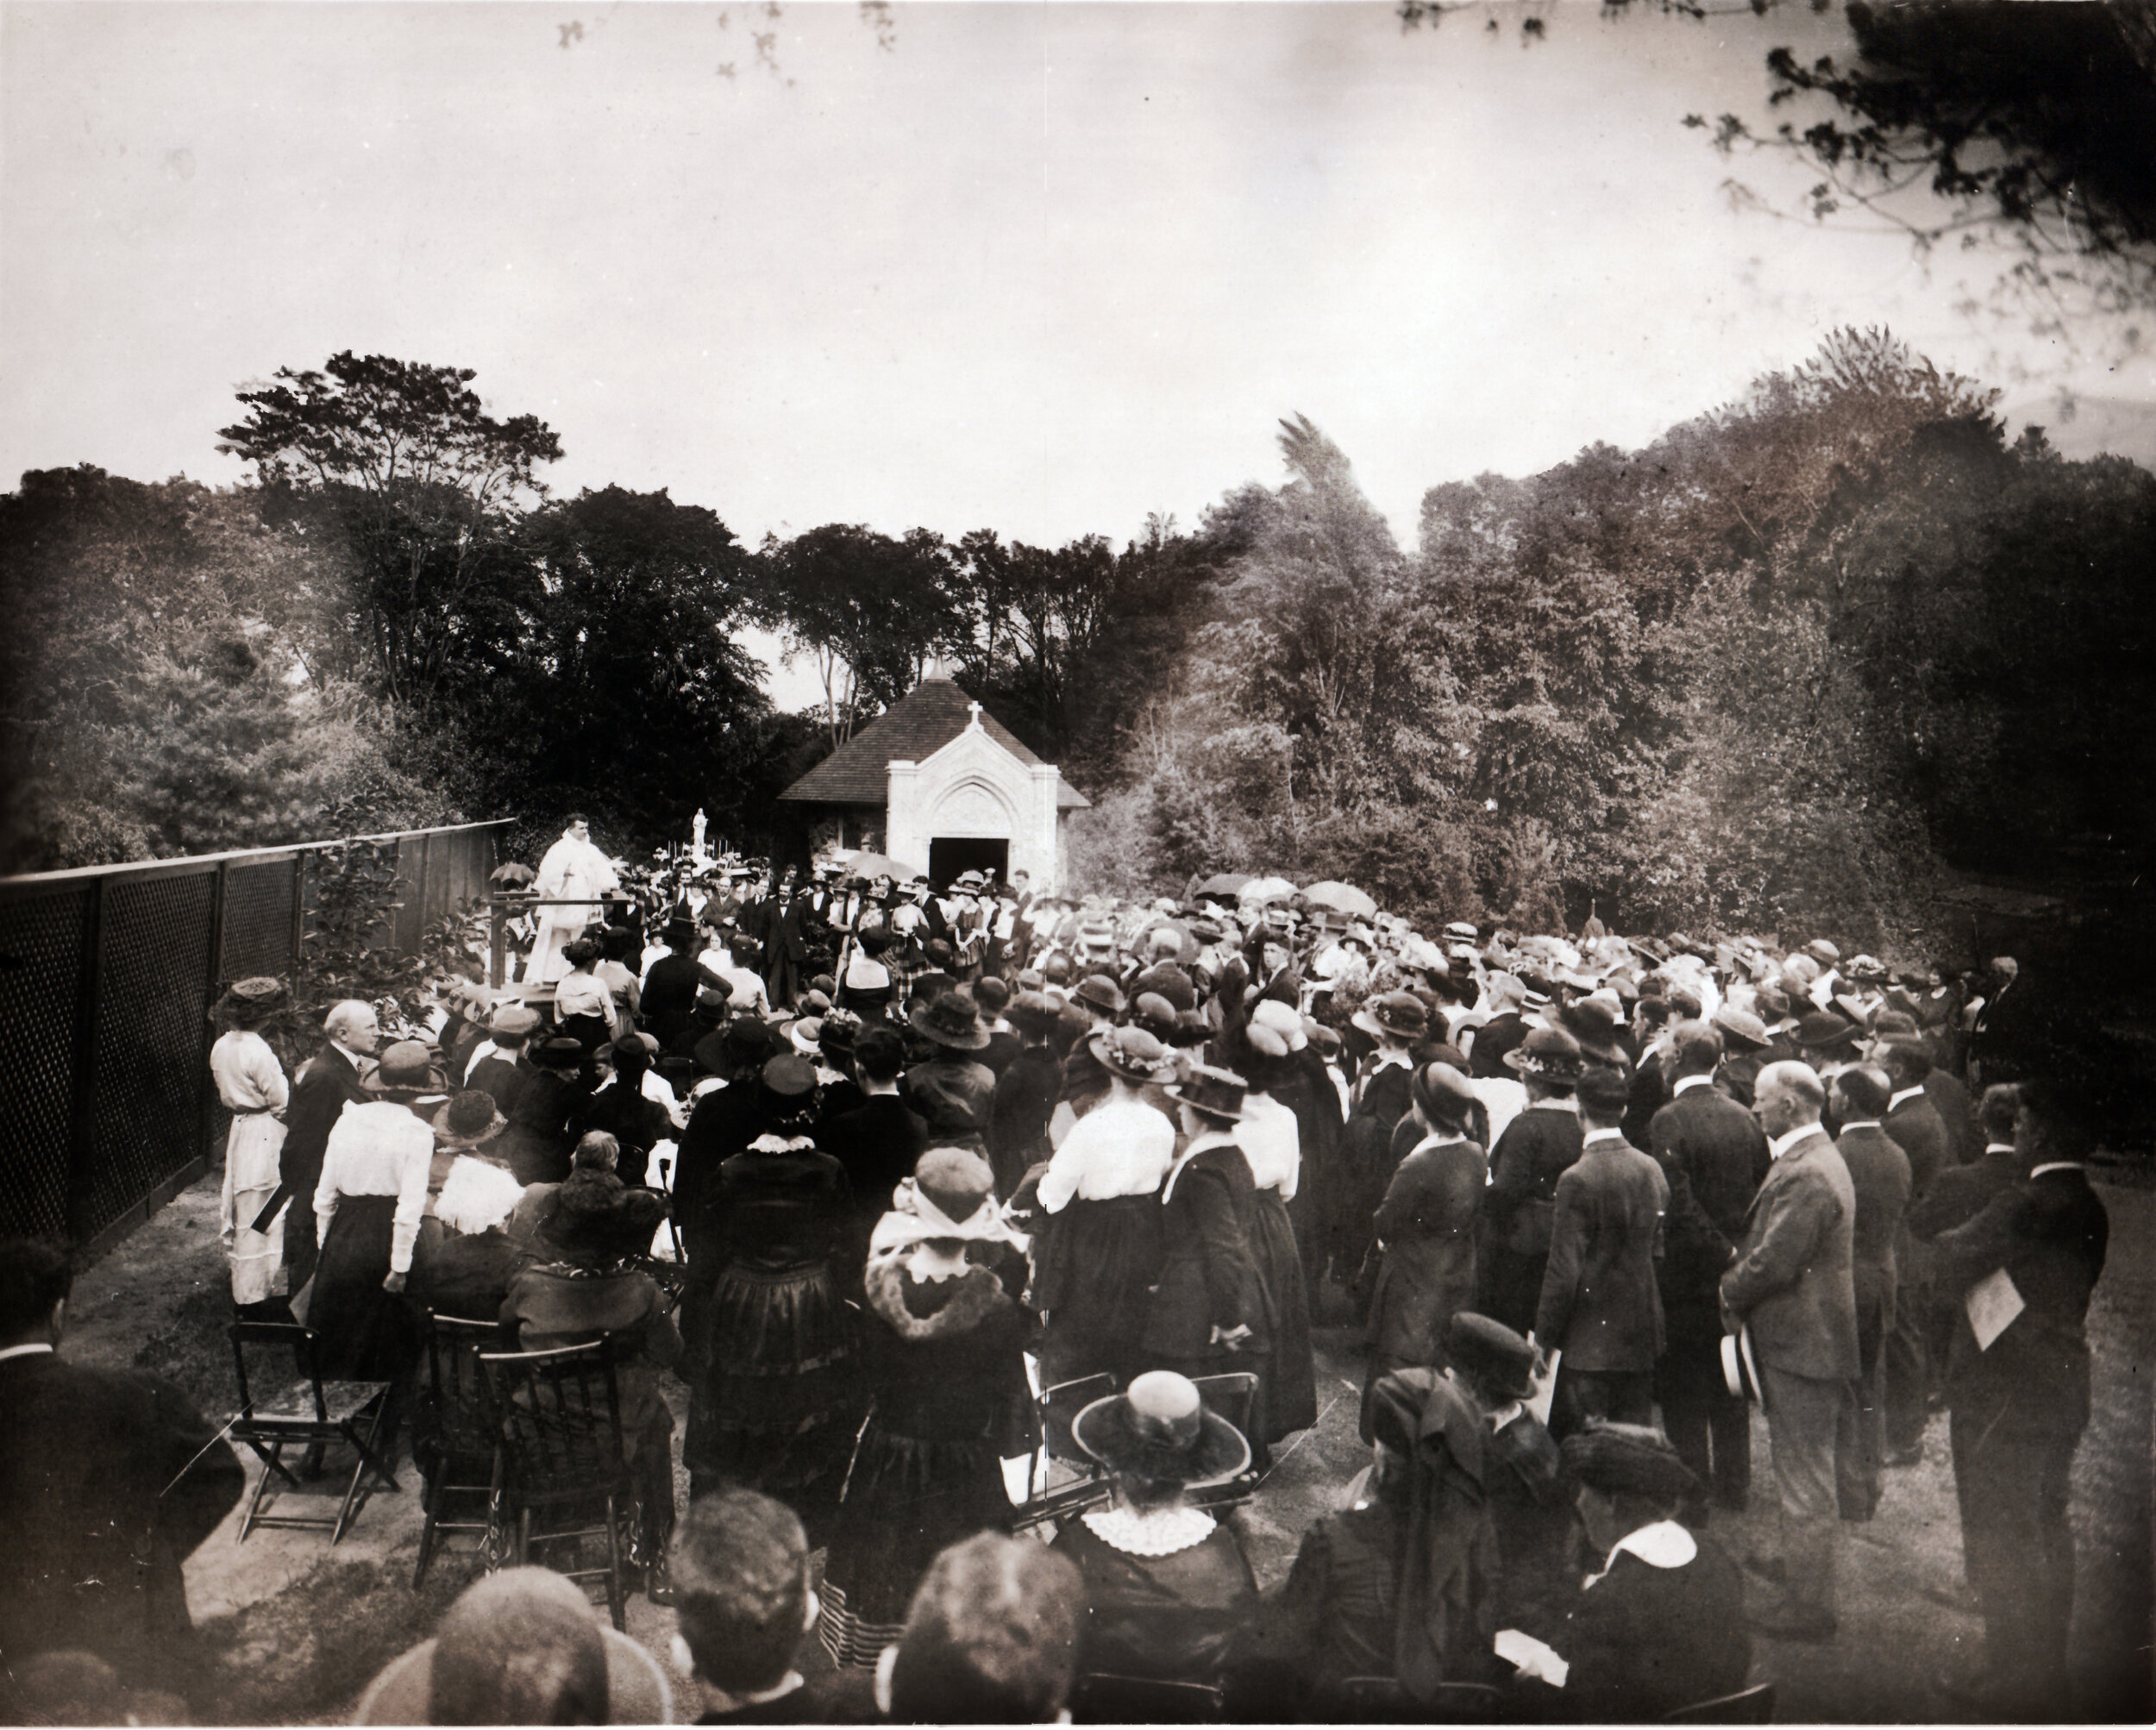 First Public Rosary Pilgrimage held May 22, 1921. The new grotto can be seen in the background.